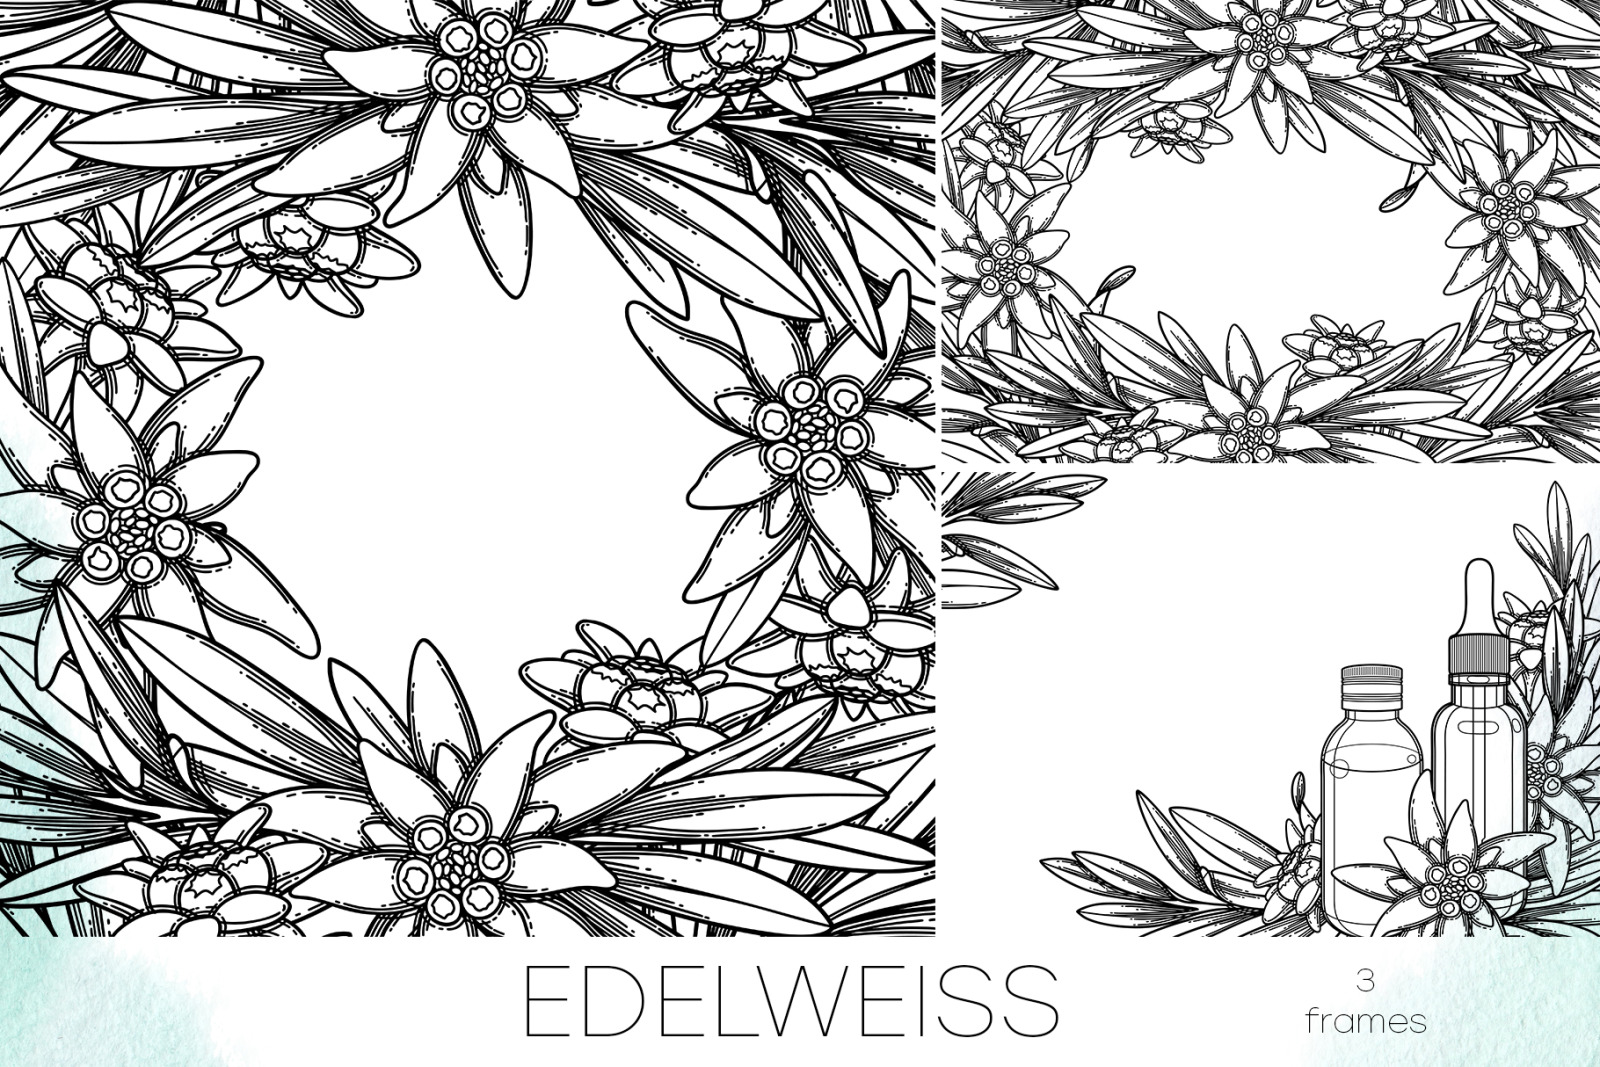 Edelweiss - vector graphics